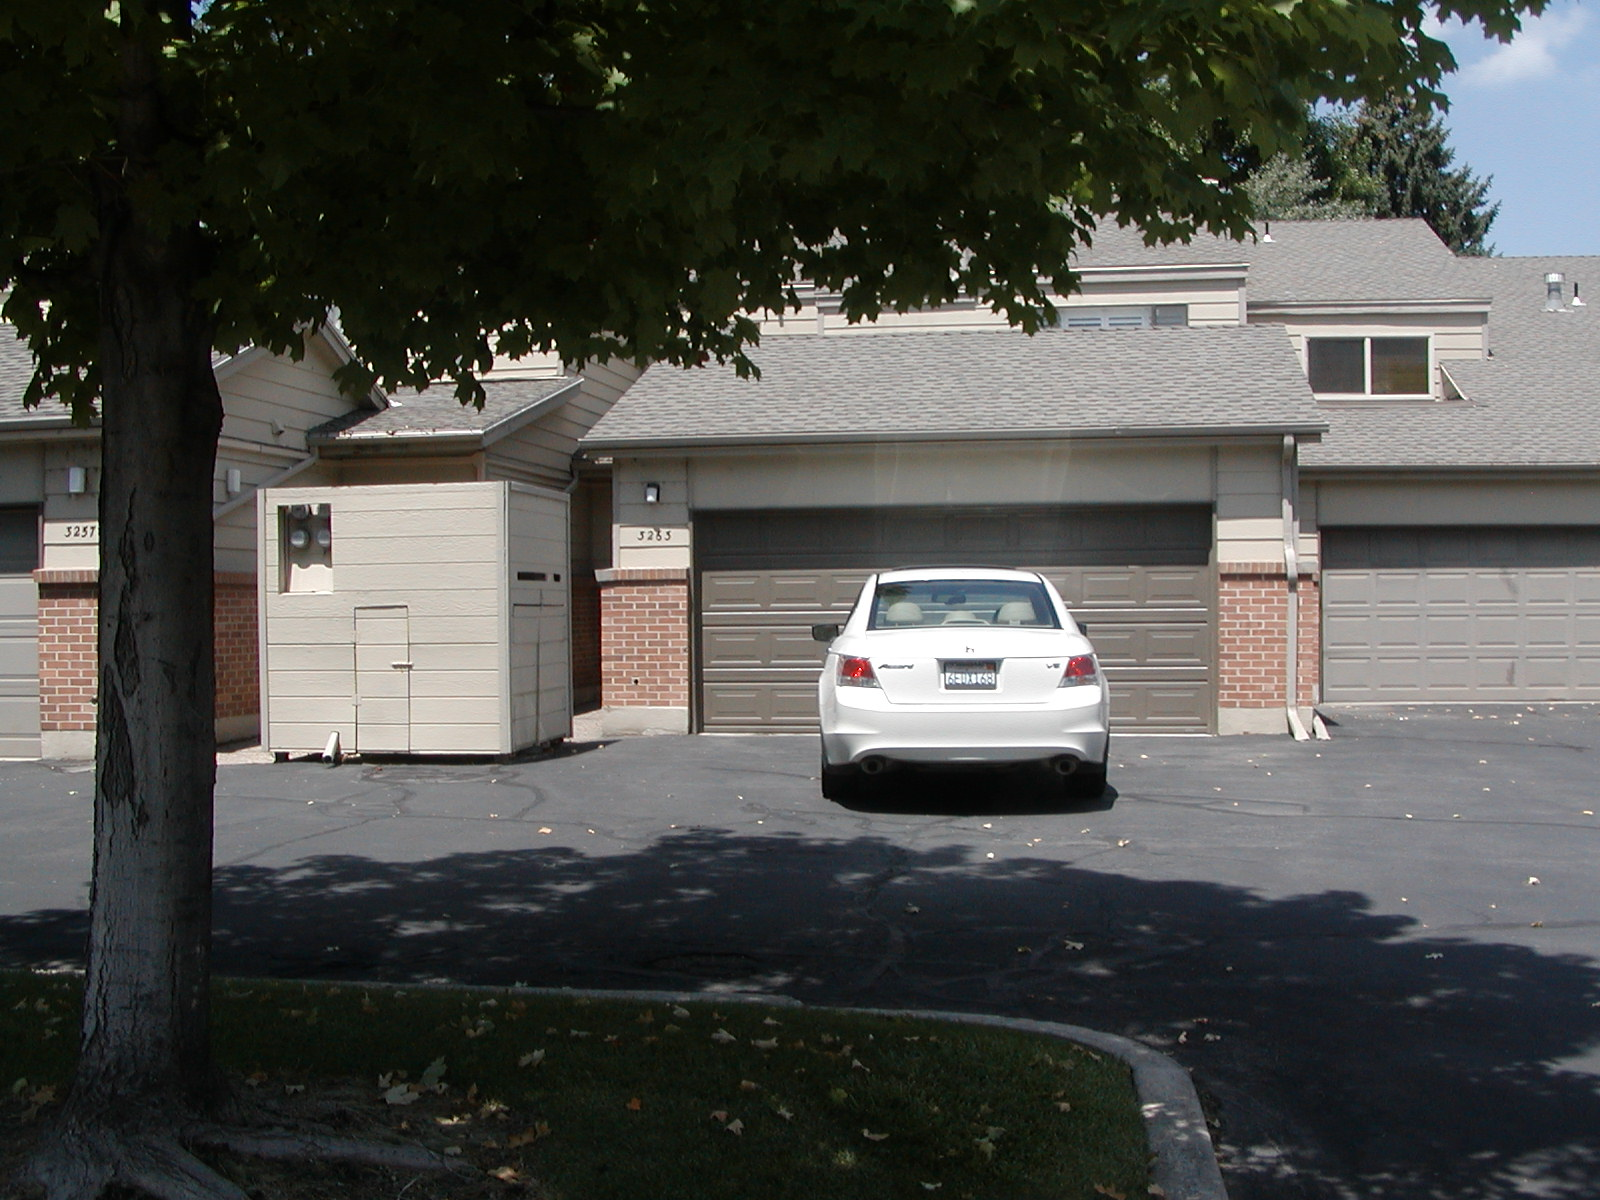 Townhouse for Rent in Provo